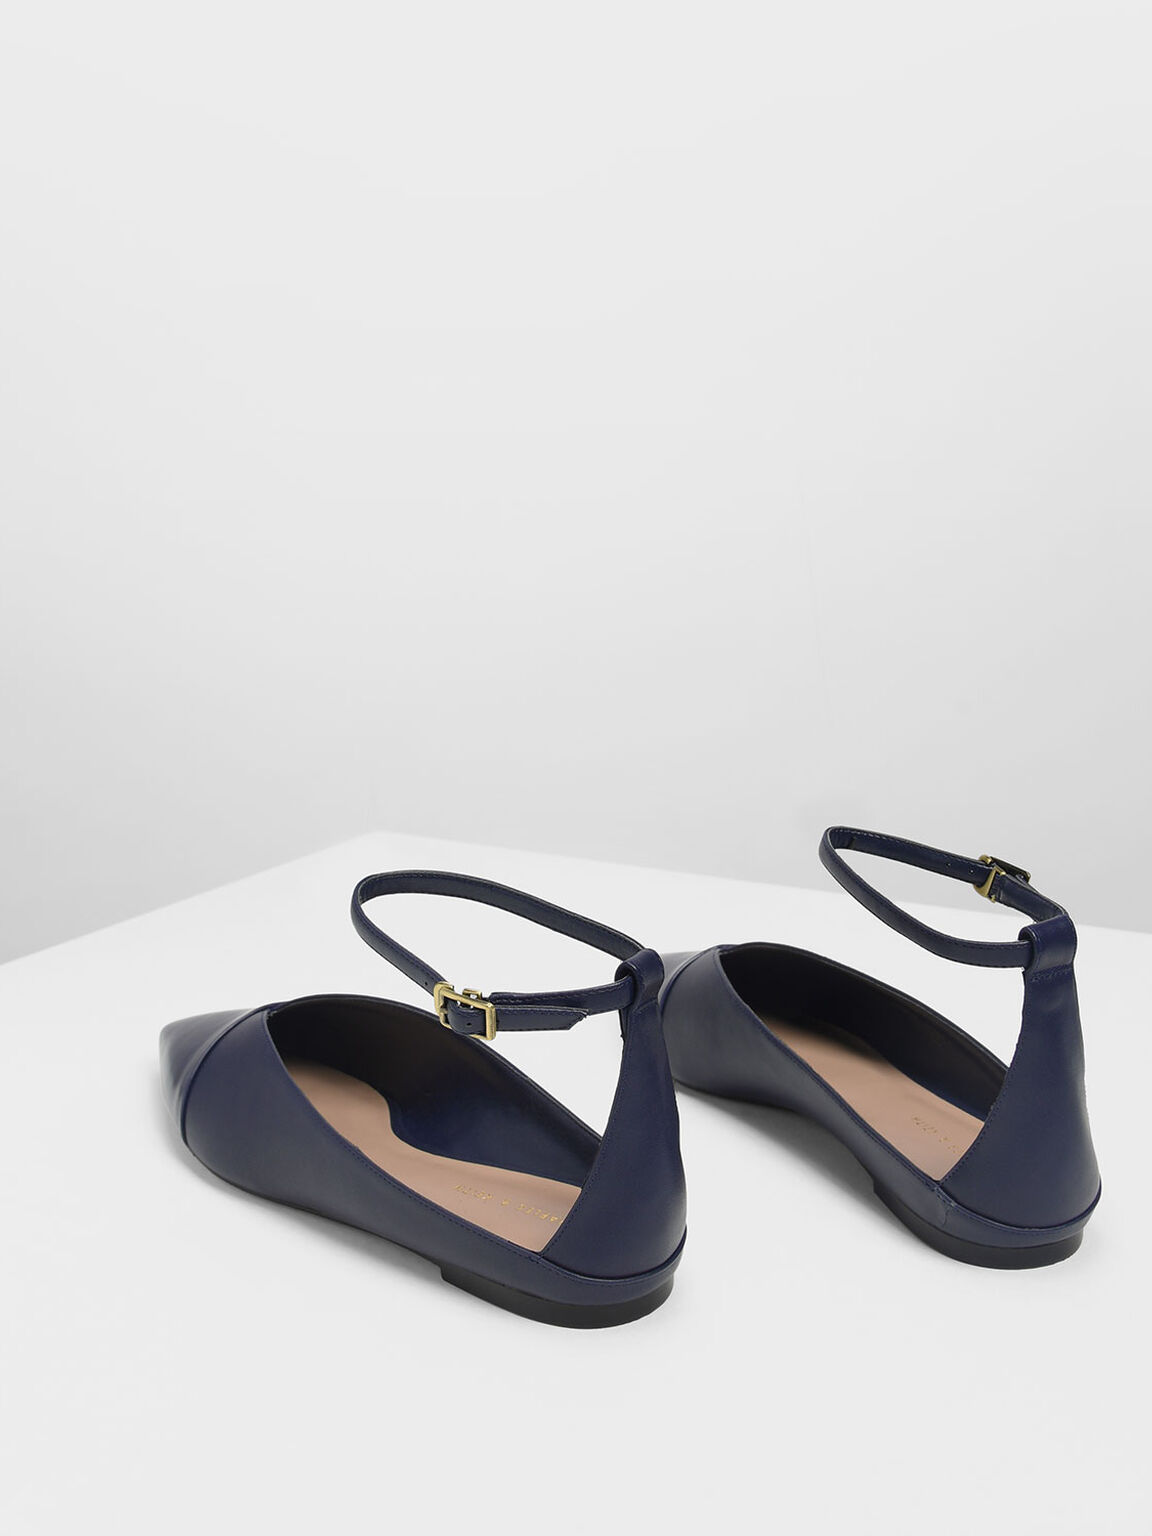 Pointed Toe Ankle Strap Flats, Dark Blue, hi-res